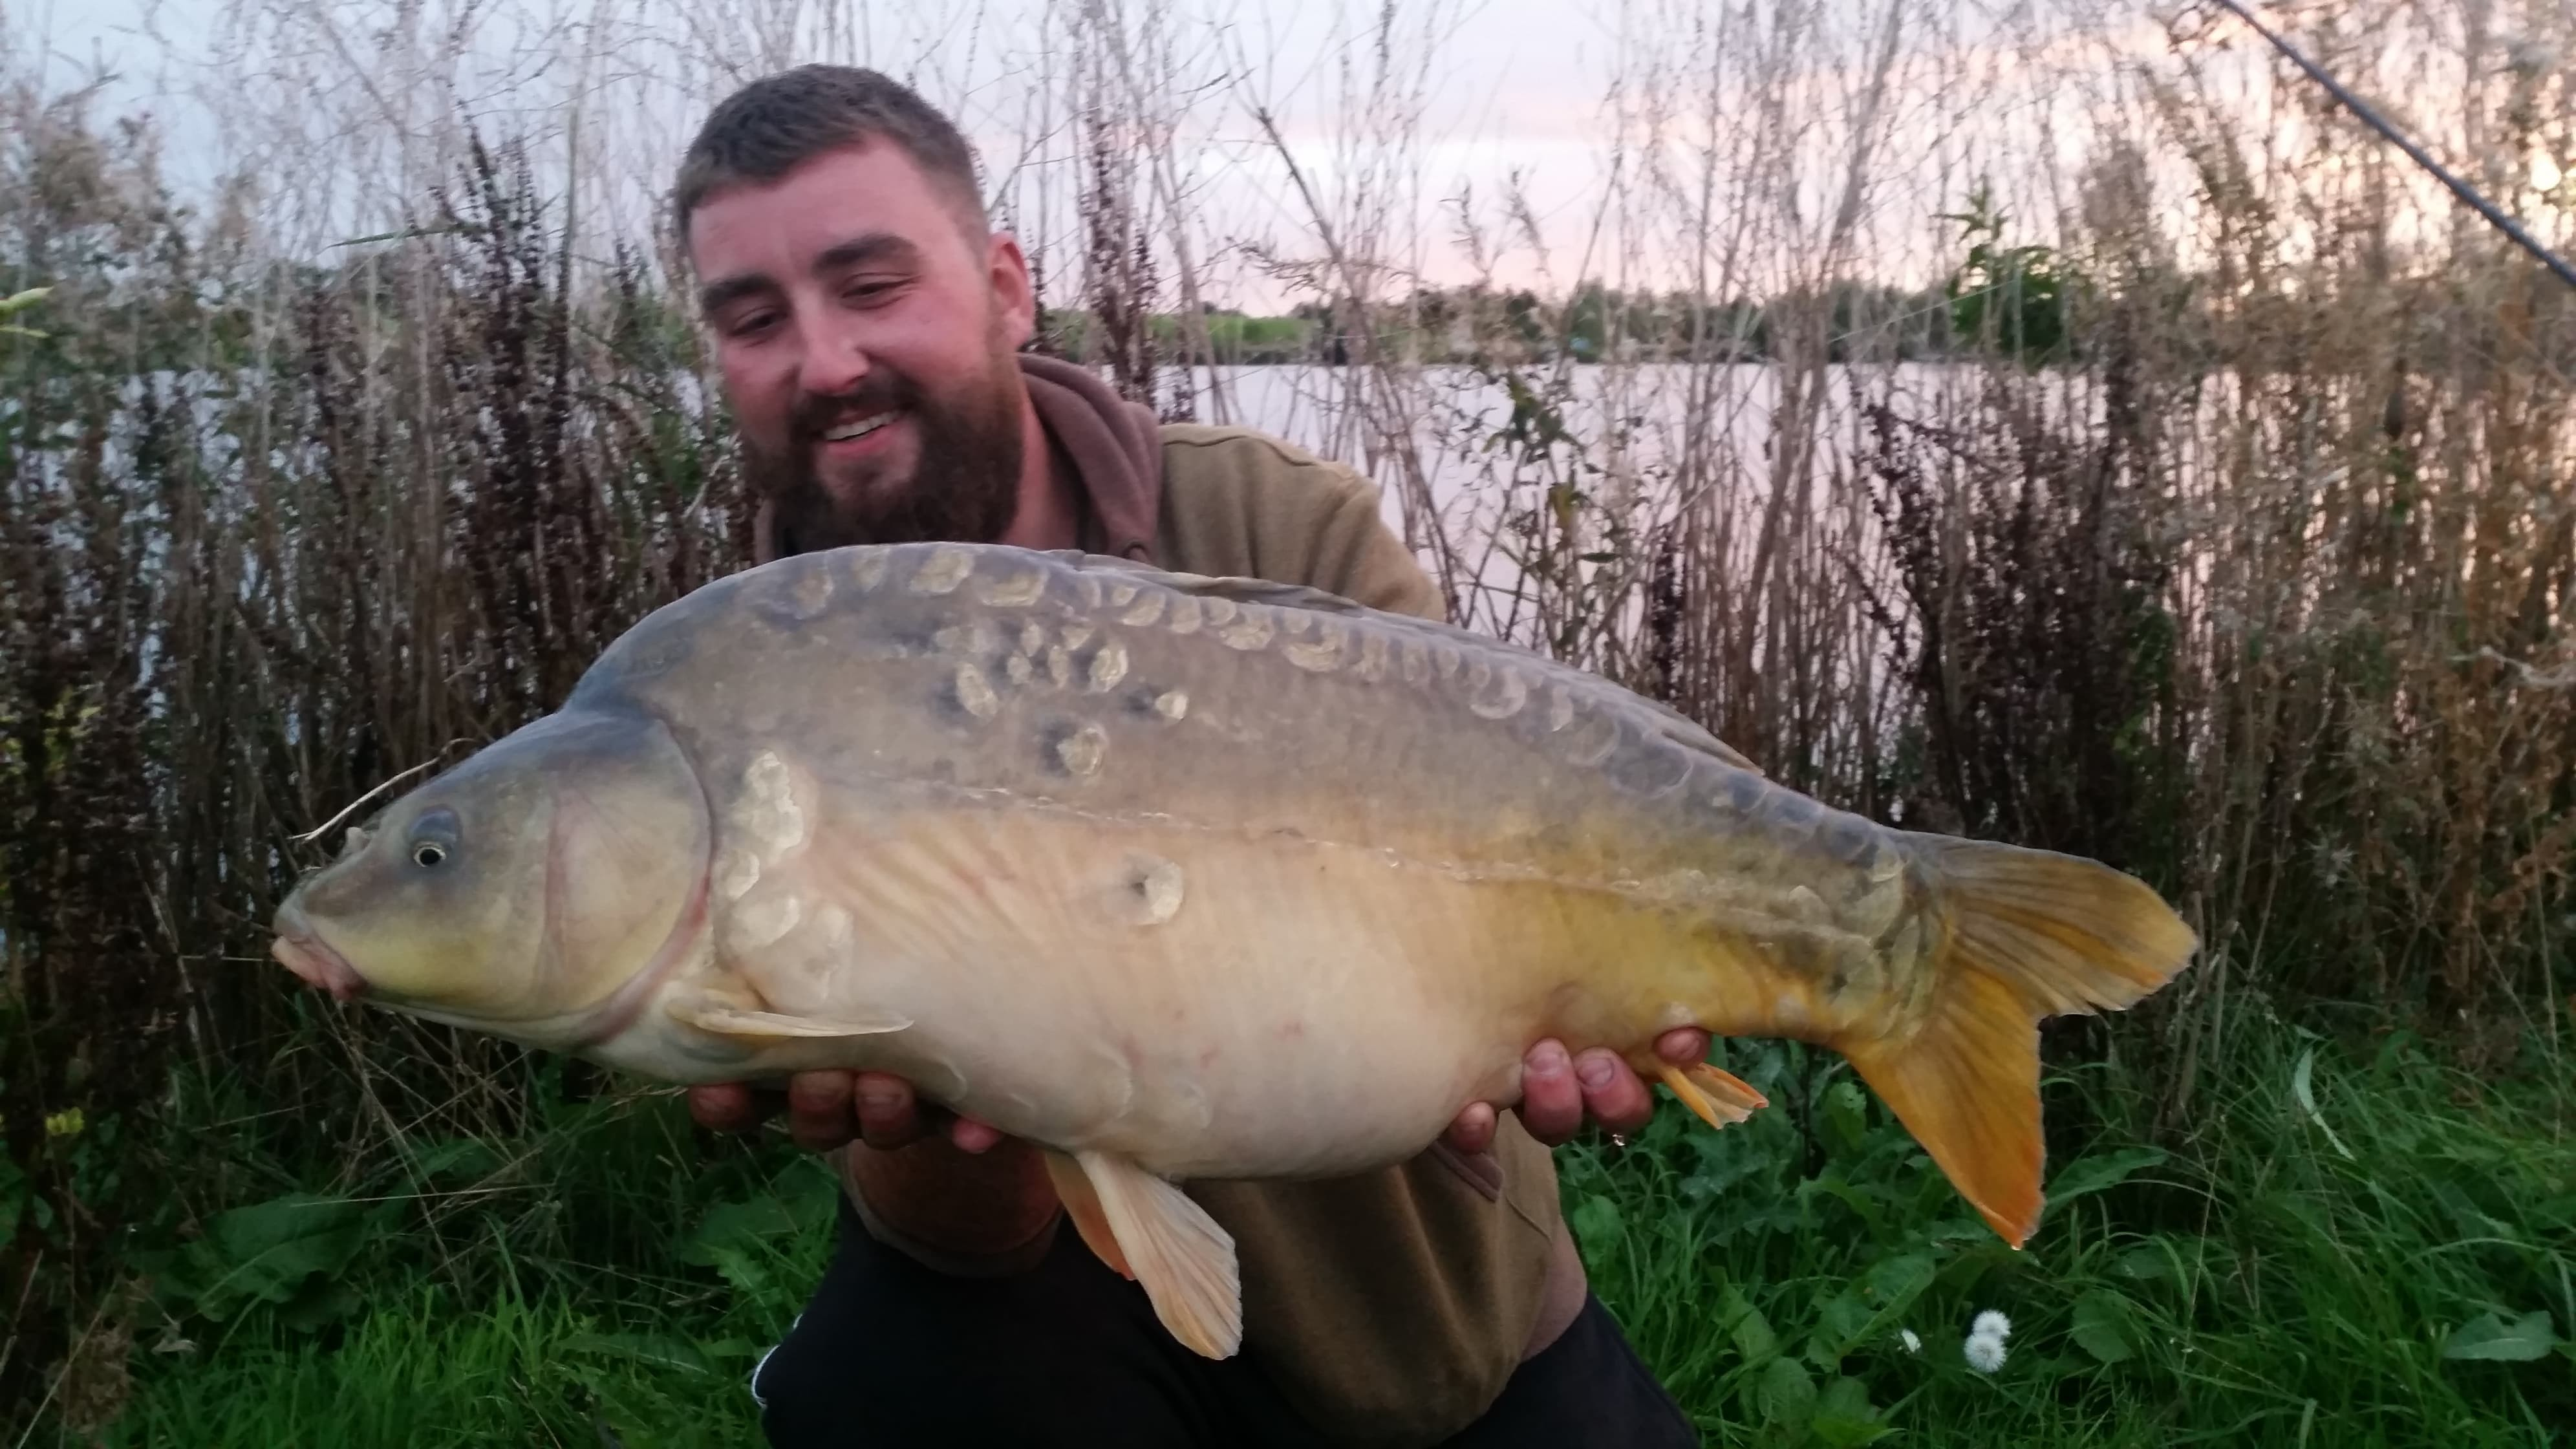 21lb 04oz  caught on The Hive